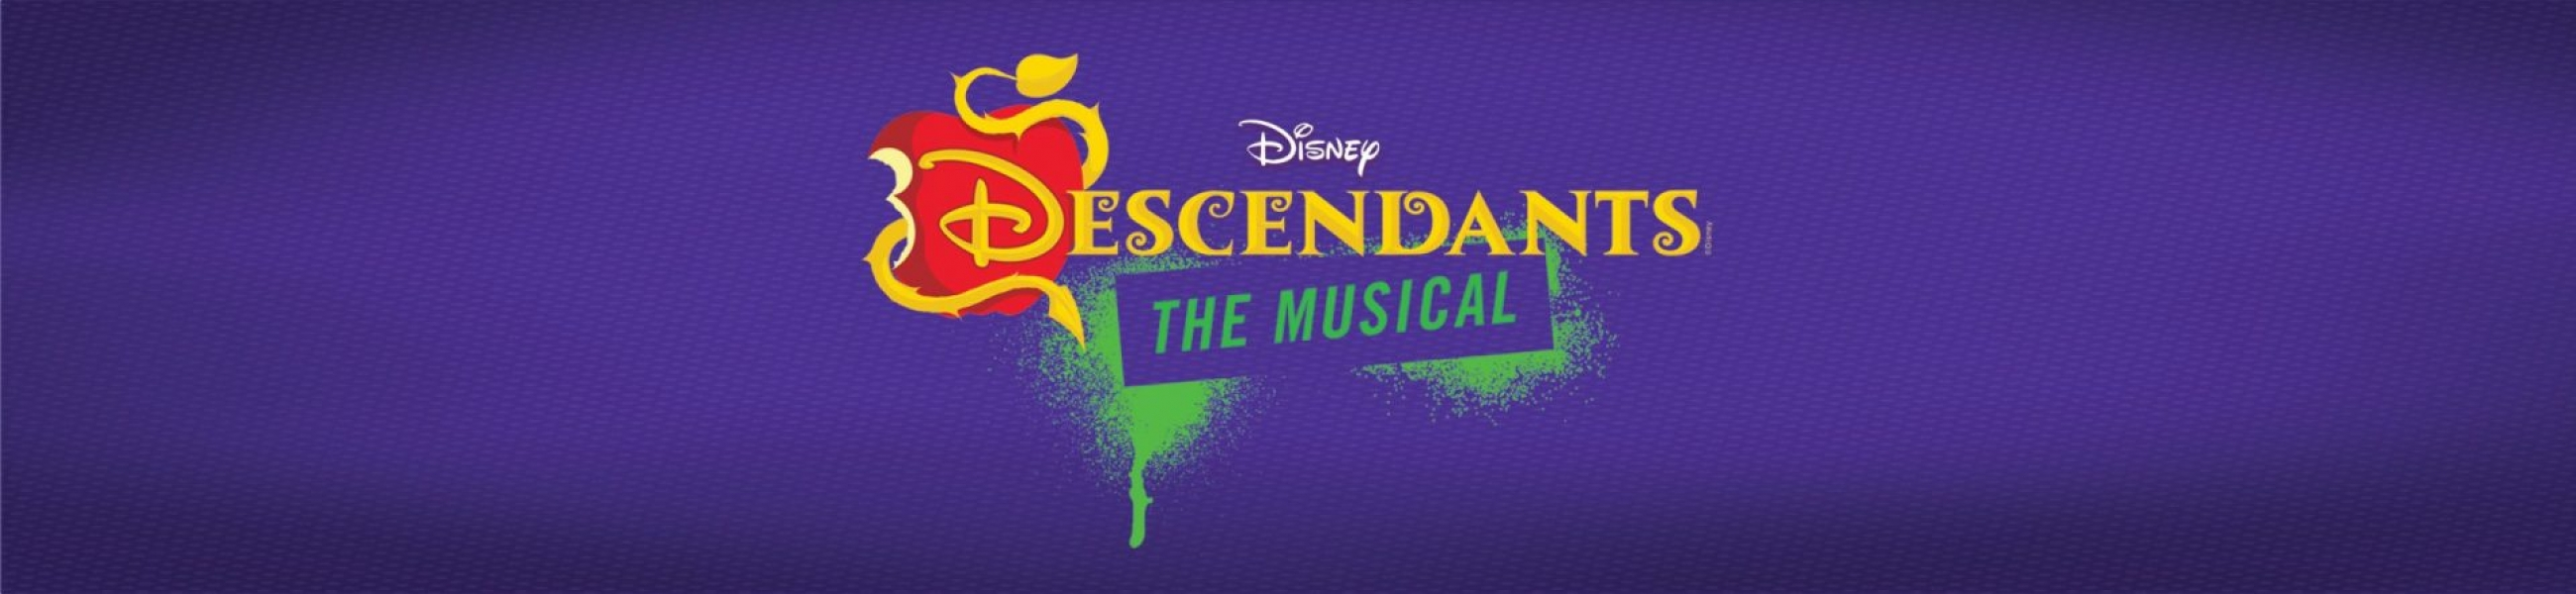 descendants-website-banner-2